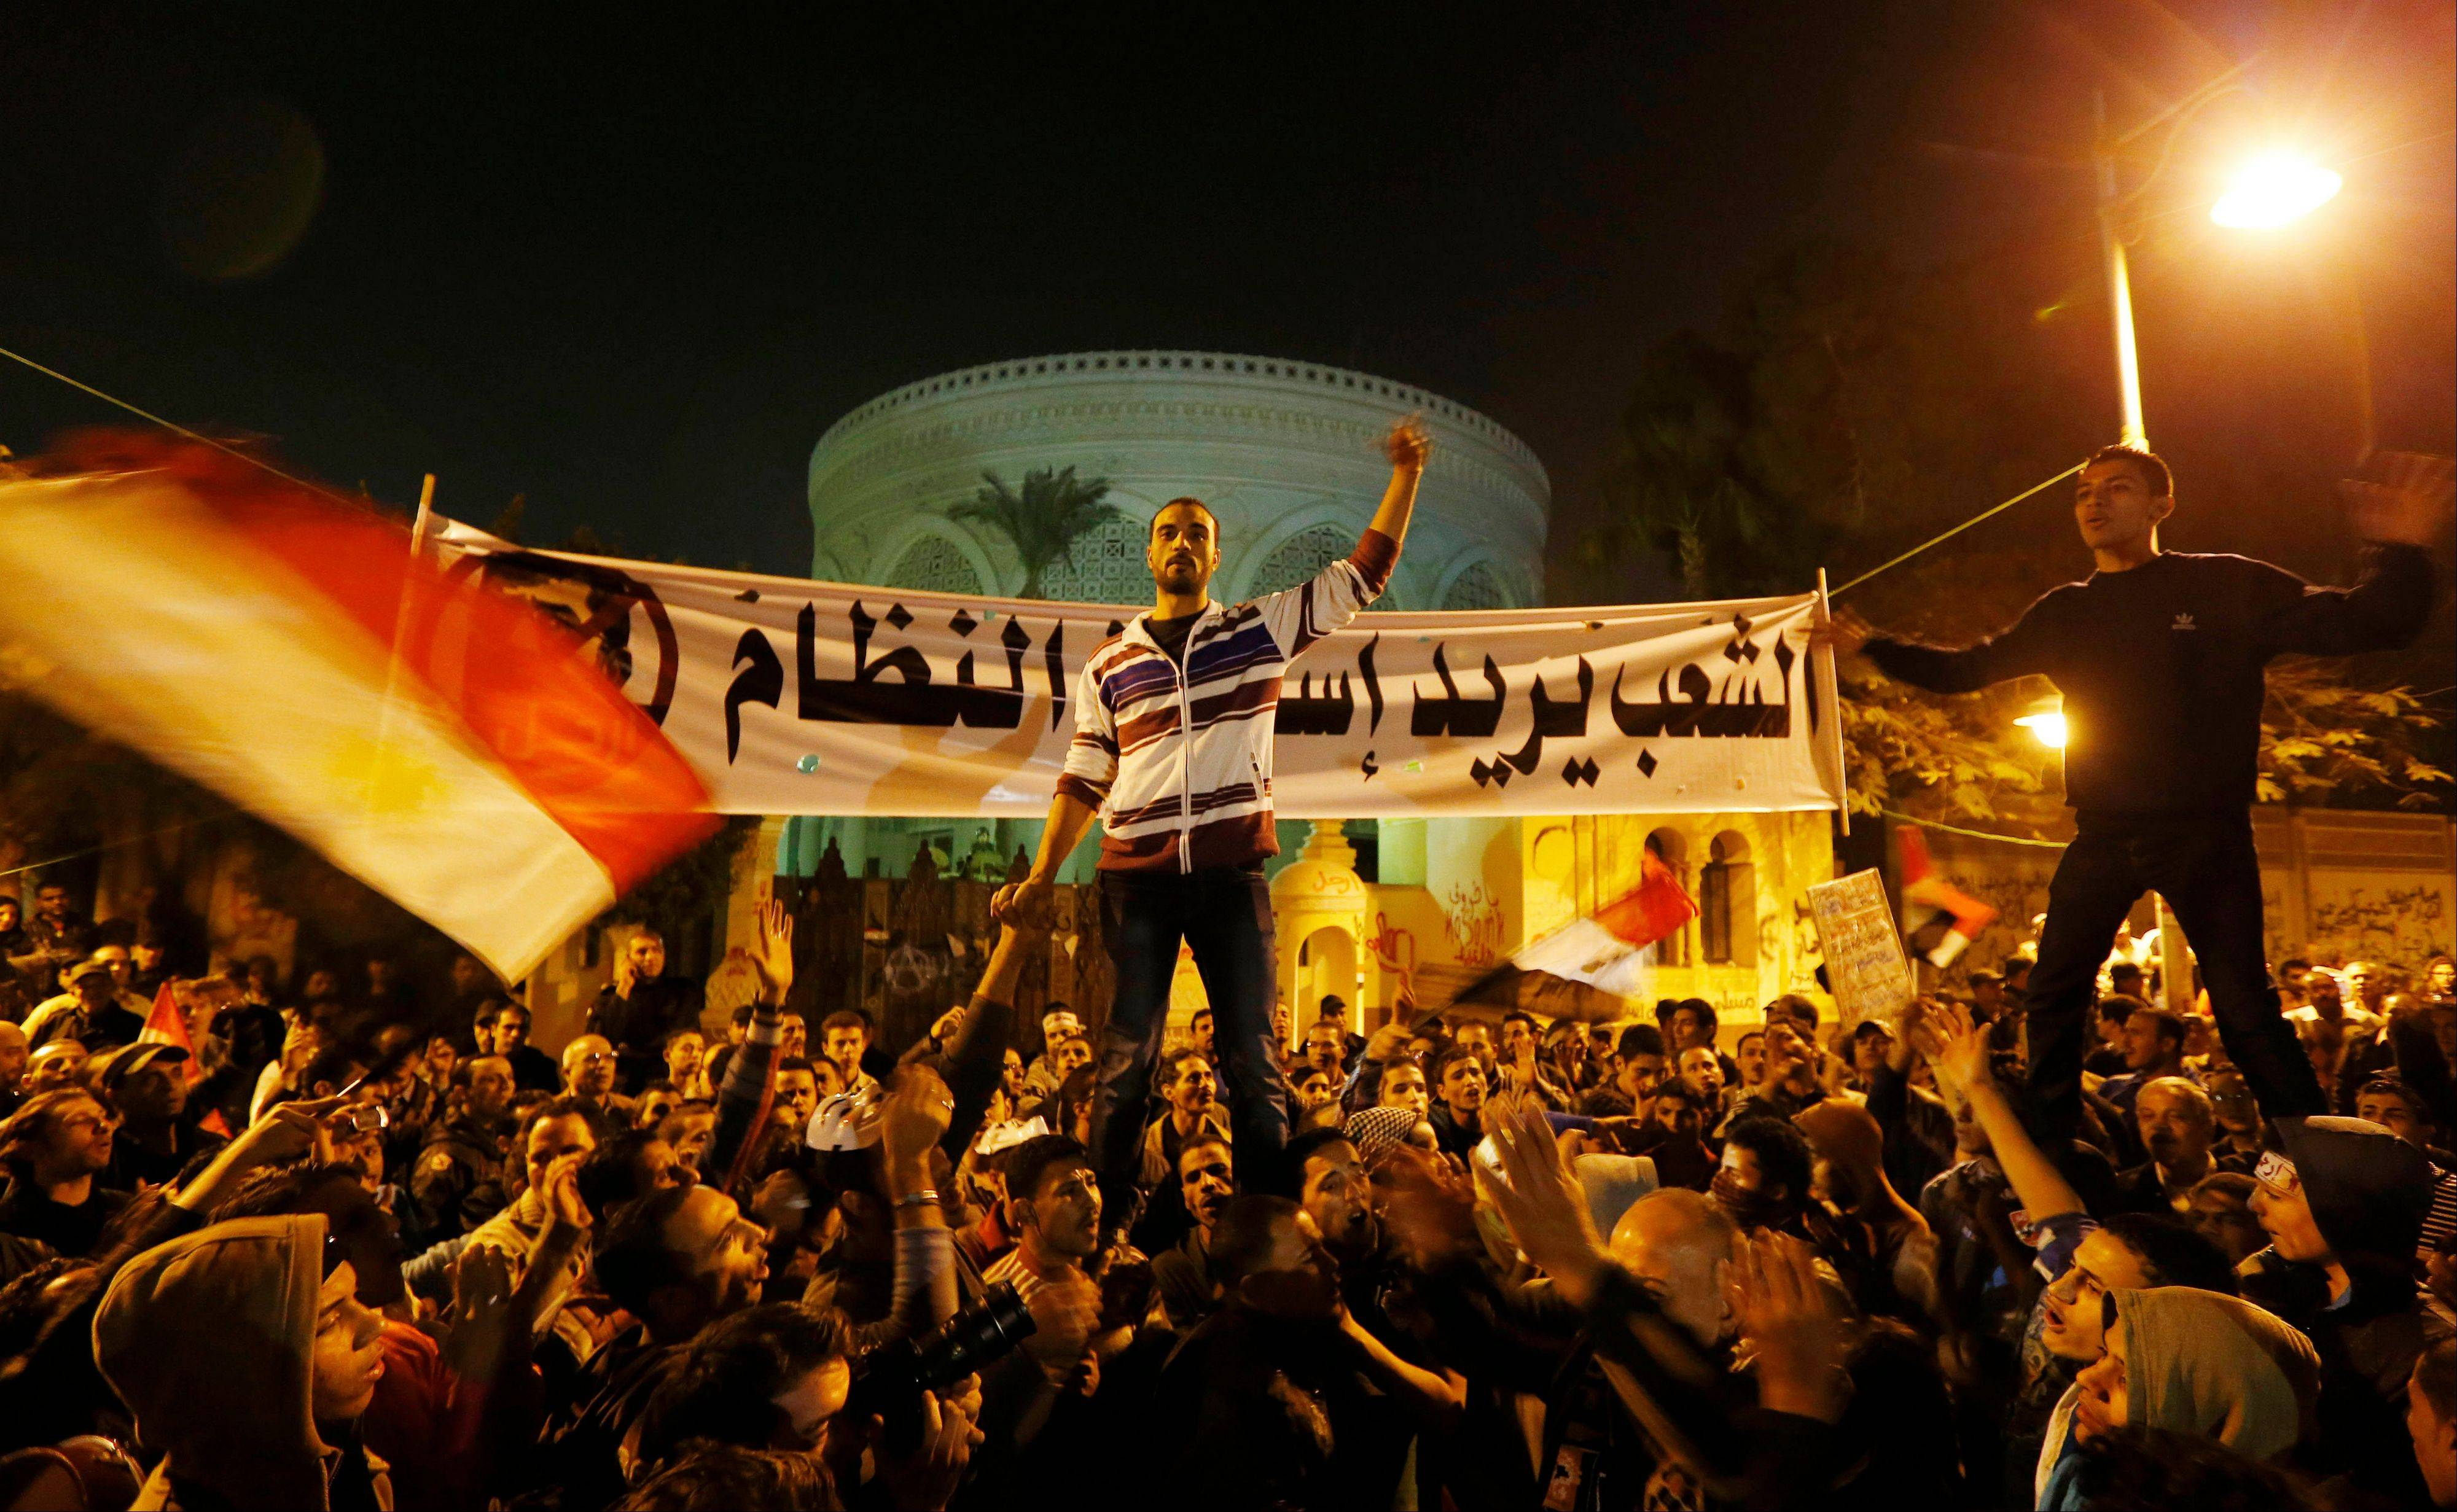 Protesters chant slogans during a demonstration in front of the presidential palace in Cairo on Egypt Sunday. Egypt's liberal opposition called for more protests Sunday.